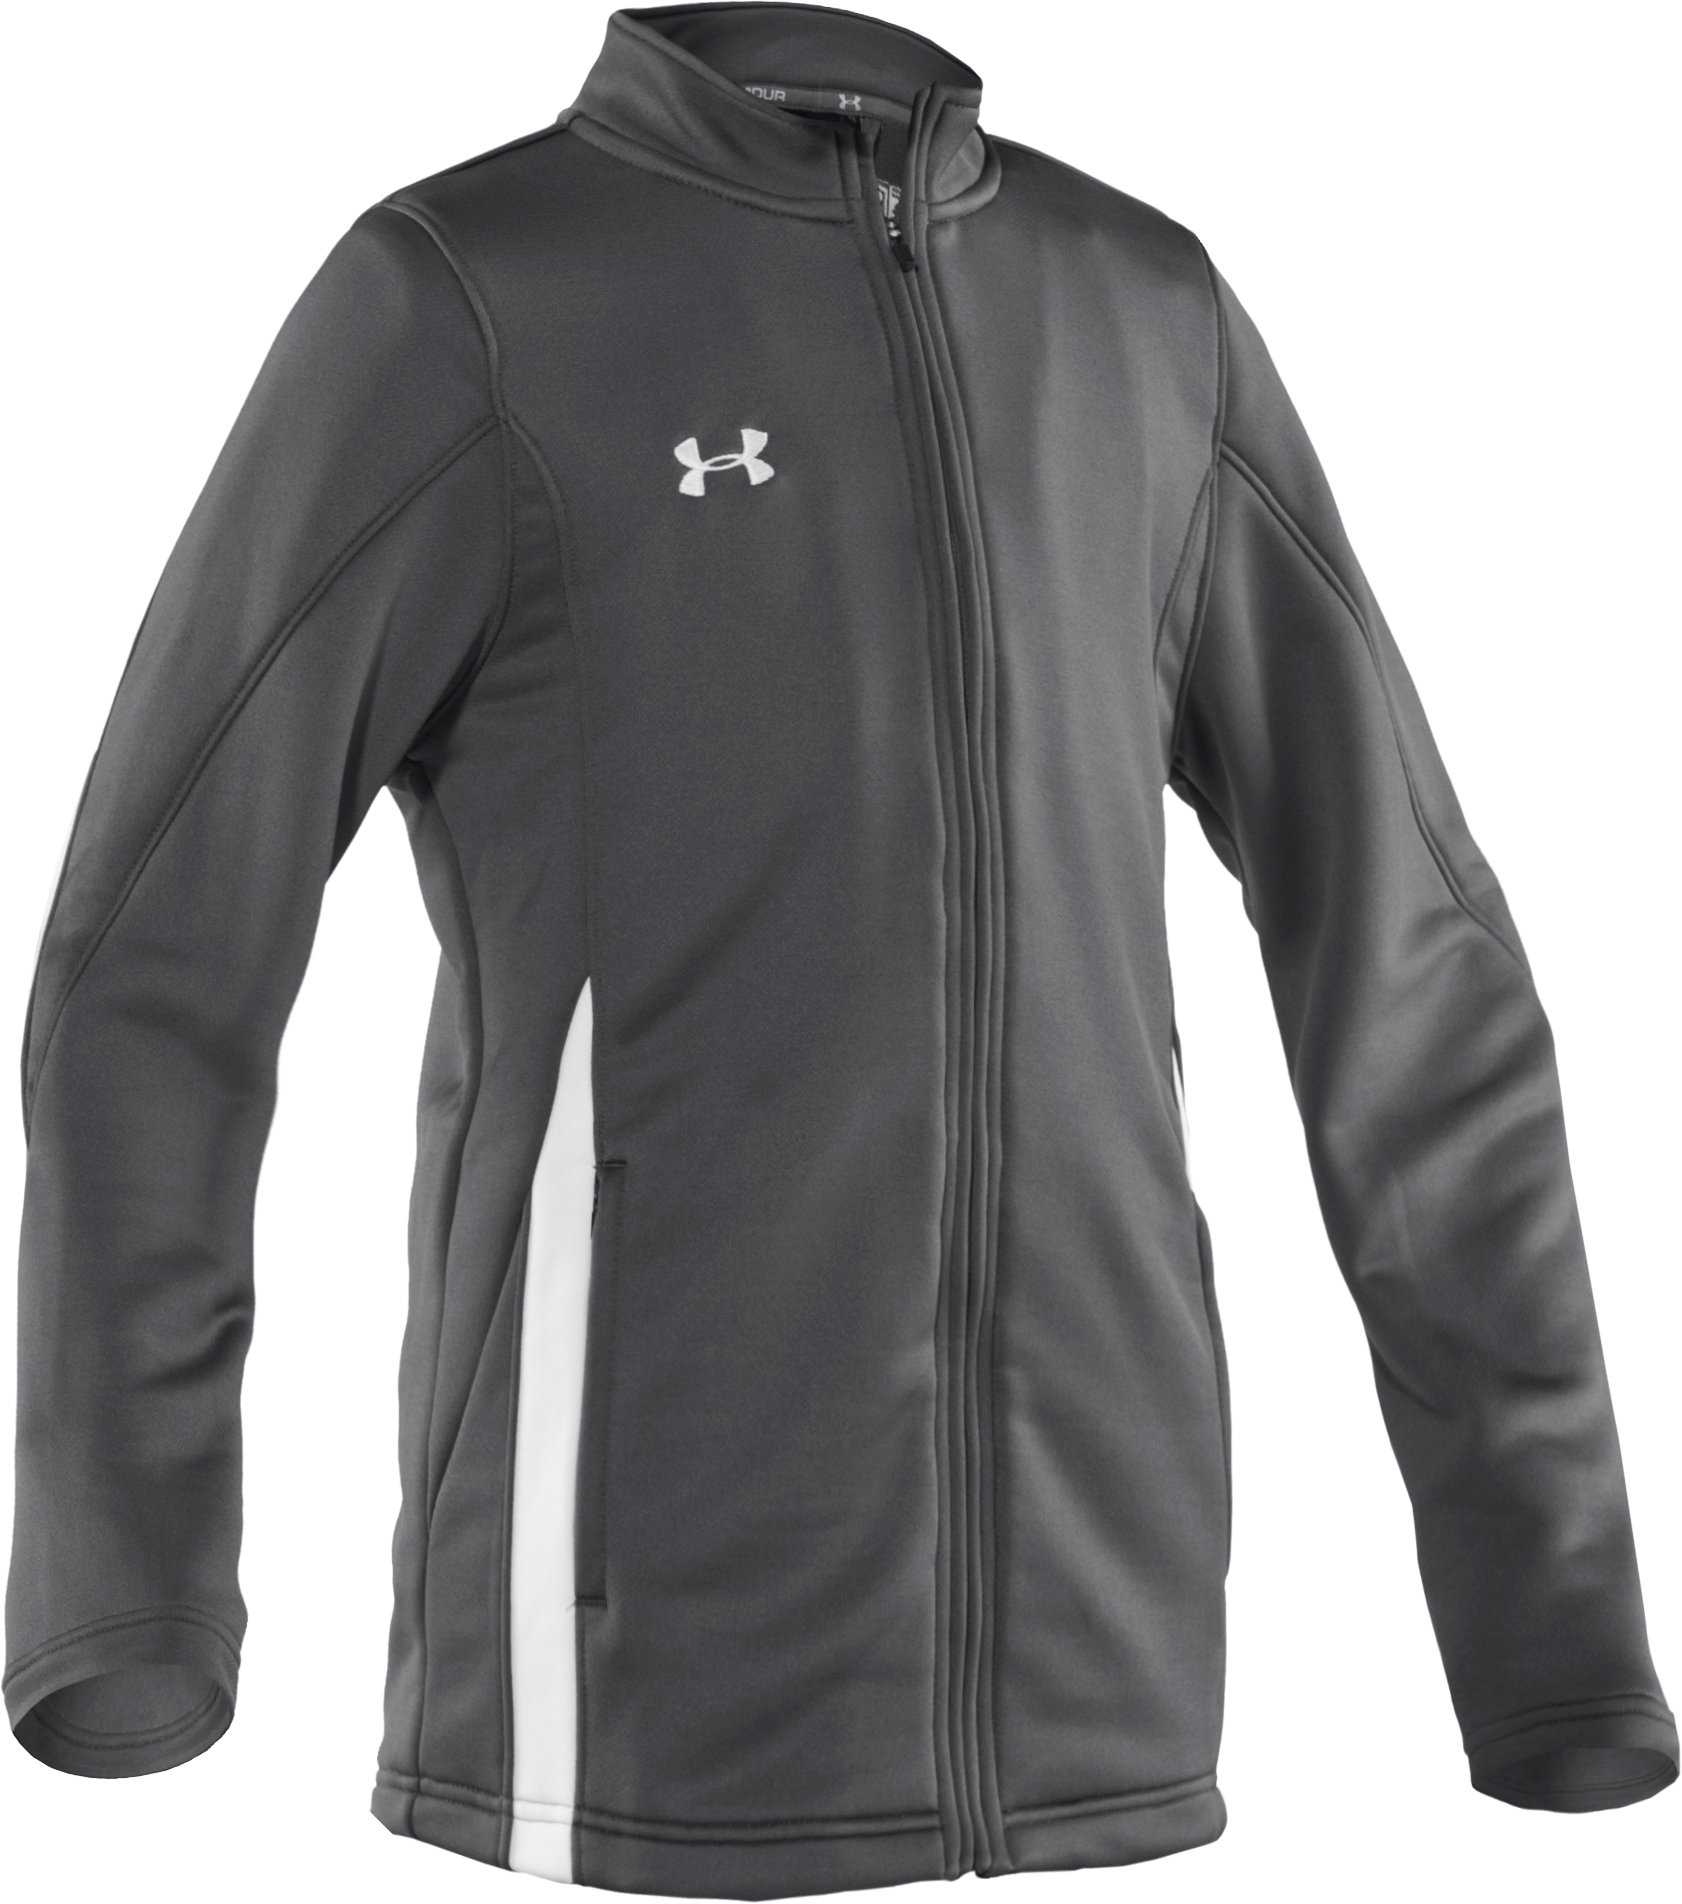 Boys' UA Classic Knit Warm-Up Jacket, Graphite